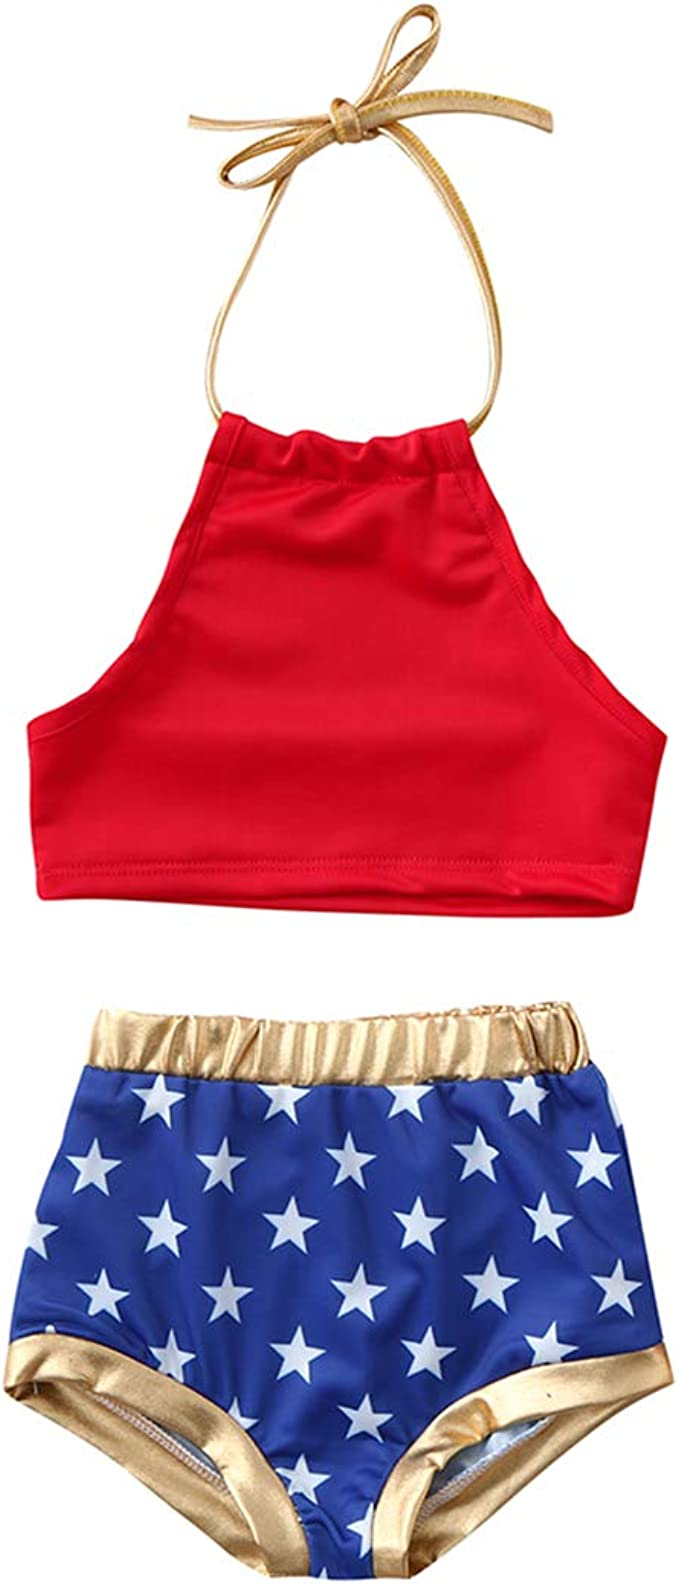 Beach fourth of july Boating Girls or Baby Girls Appliqu\u00e9 Anchor WBow WName Dress Summer or Just Because!!